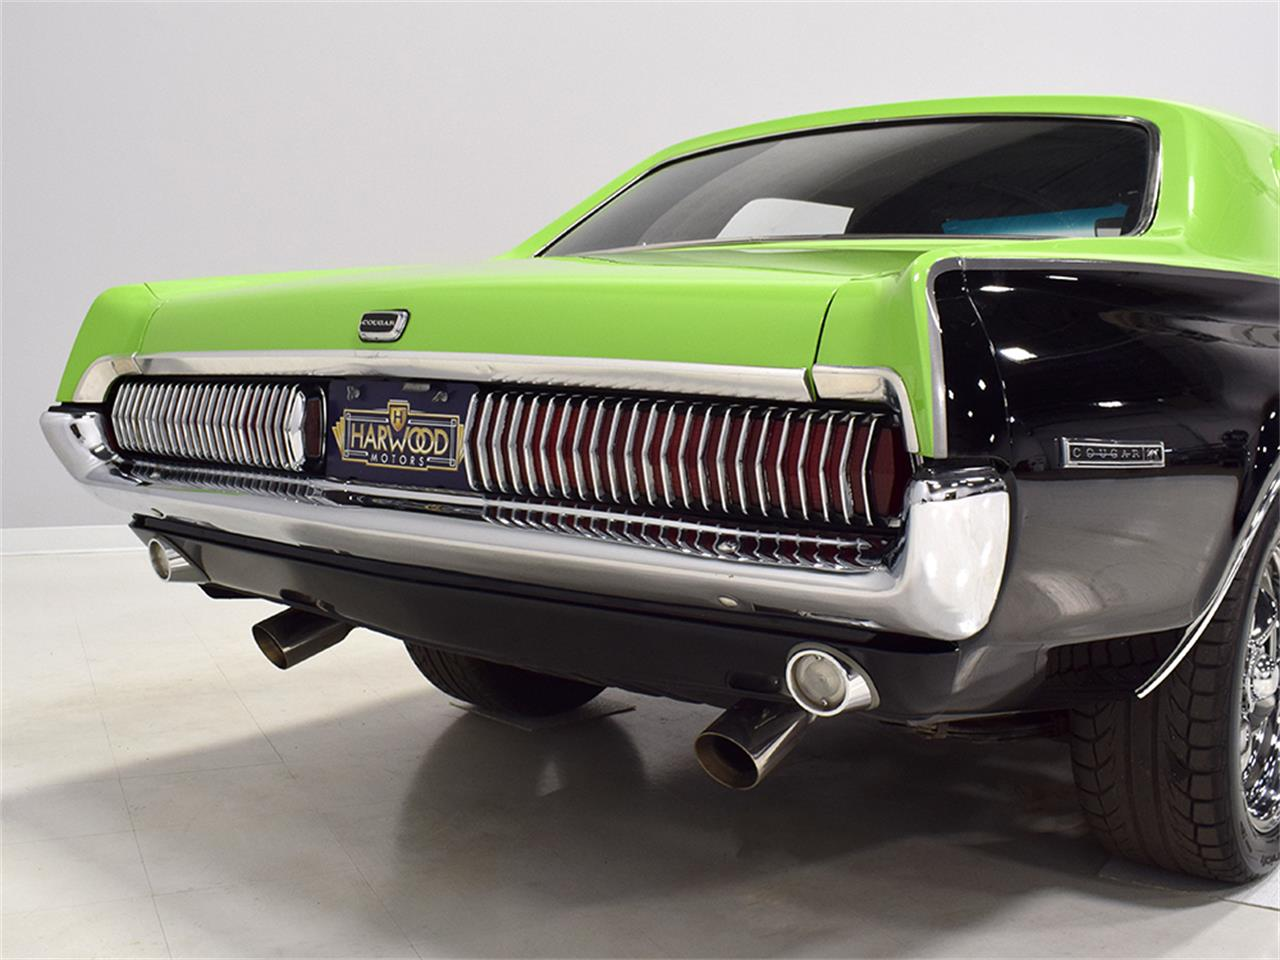 Large Picture of Classic '67 Mercury Cougar located in Macedonia Ohio Offered by Harwood Motors, LTD. - MH5X